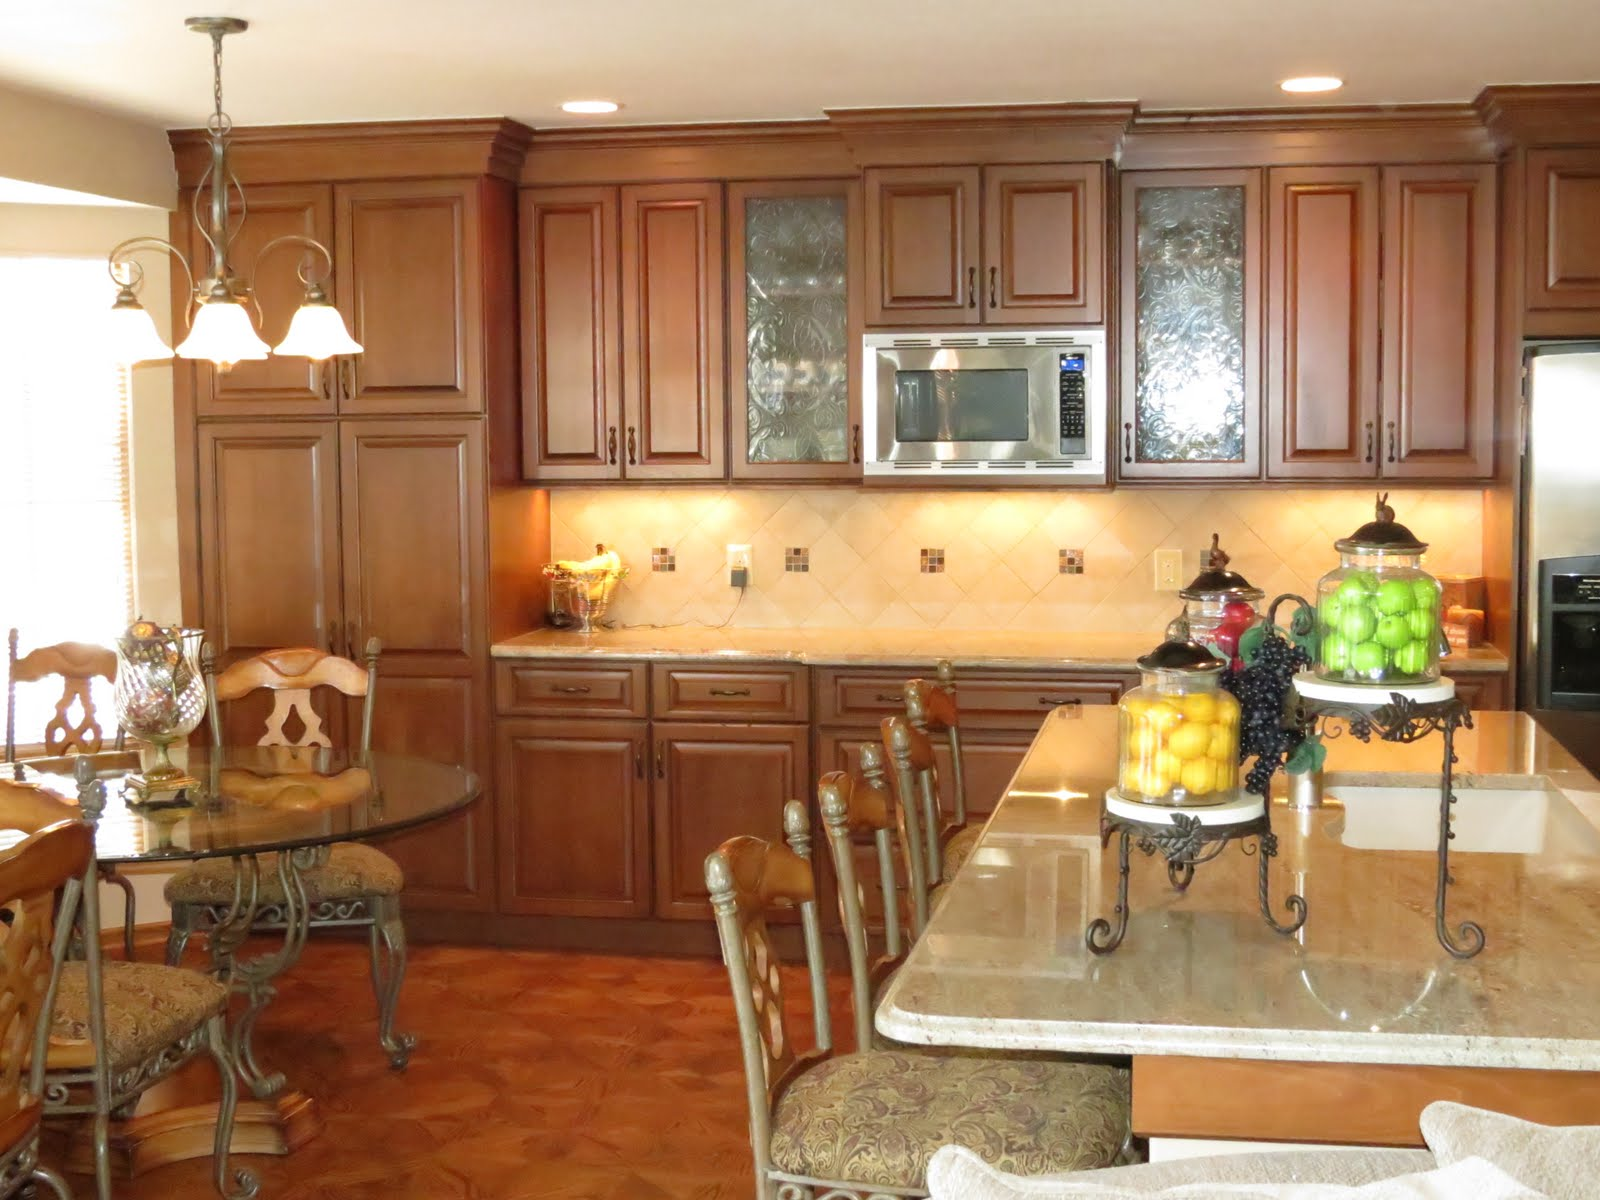 Kc Cabinetry Design And Renovation Kitchen Remodel In